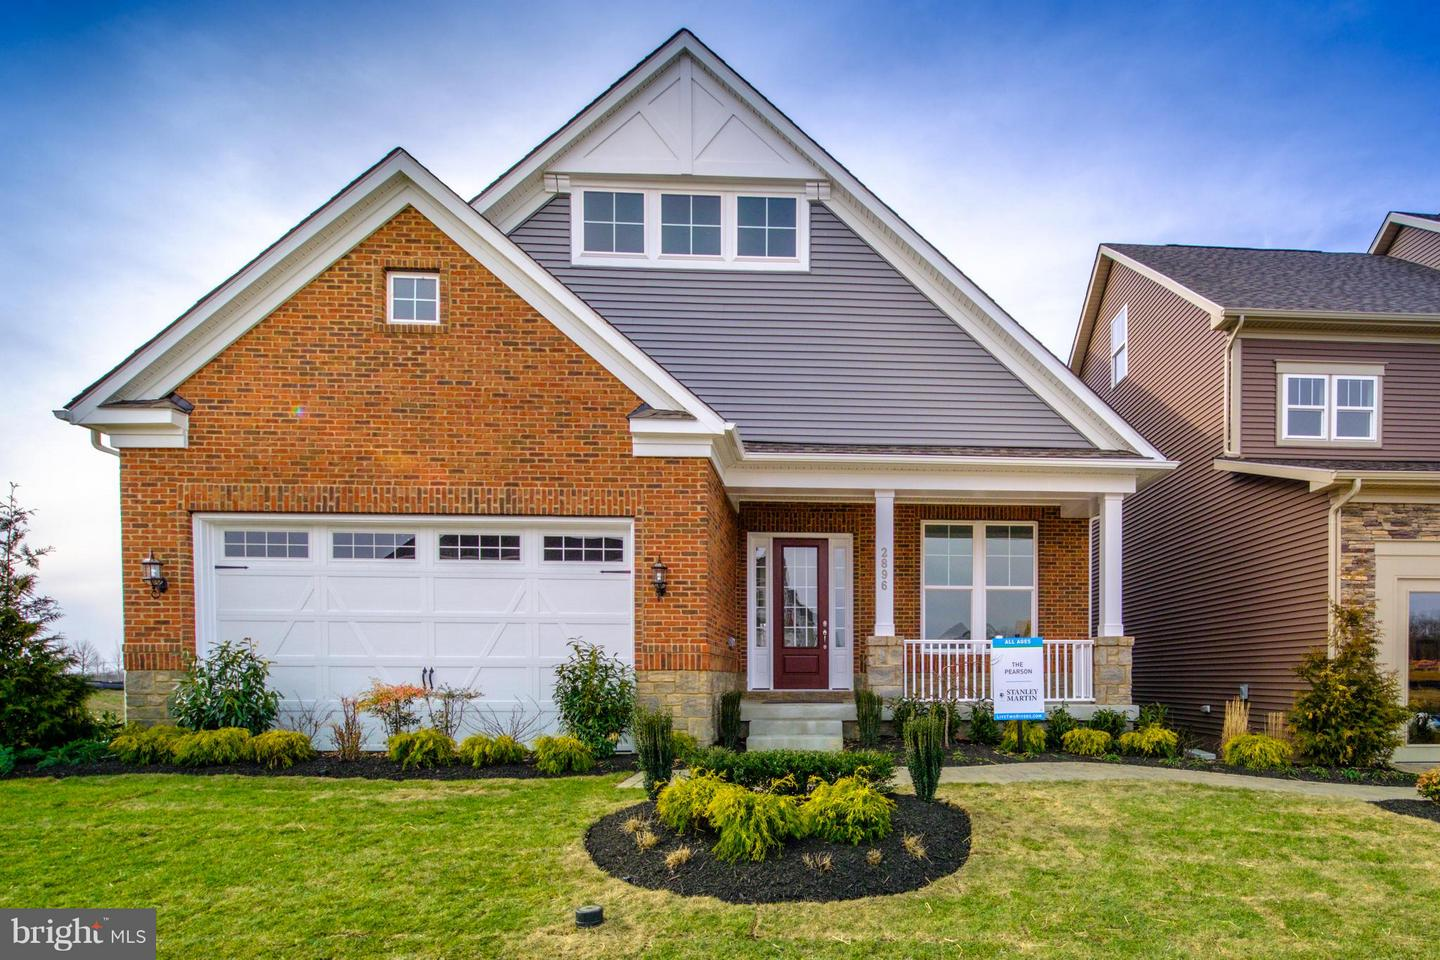 0 BROAD WING DRIVE, ODENTON, Maryland